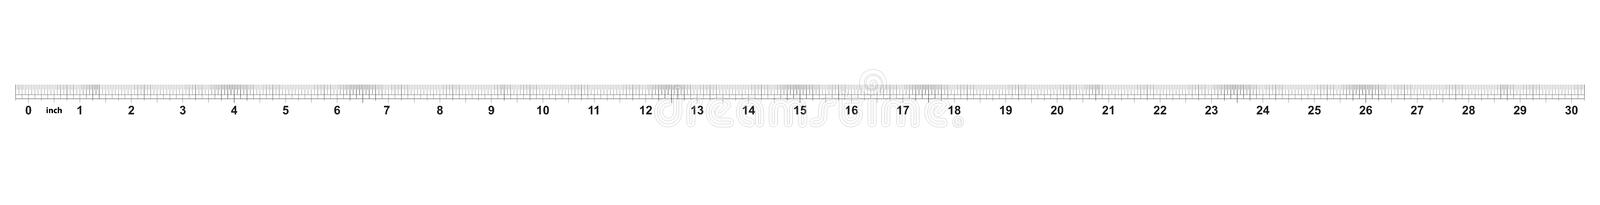 30 inch ruler. The price of division - 32 divisions by inch. Exact length measurement device. Calibration grid.  stock illustration